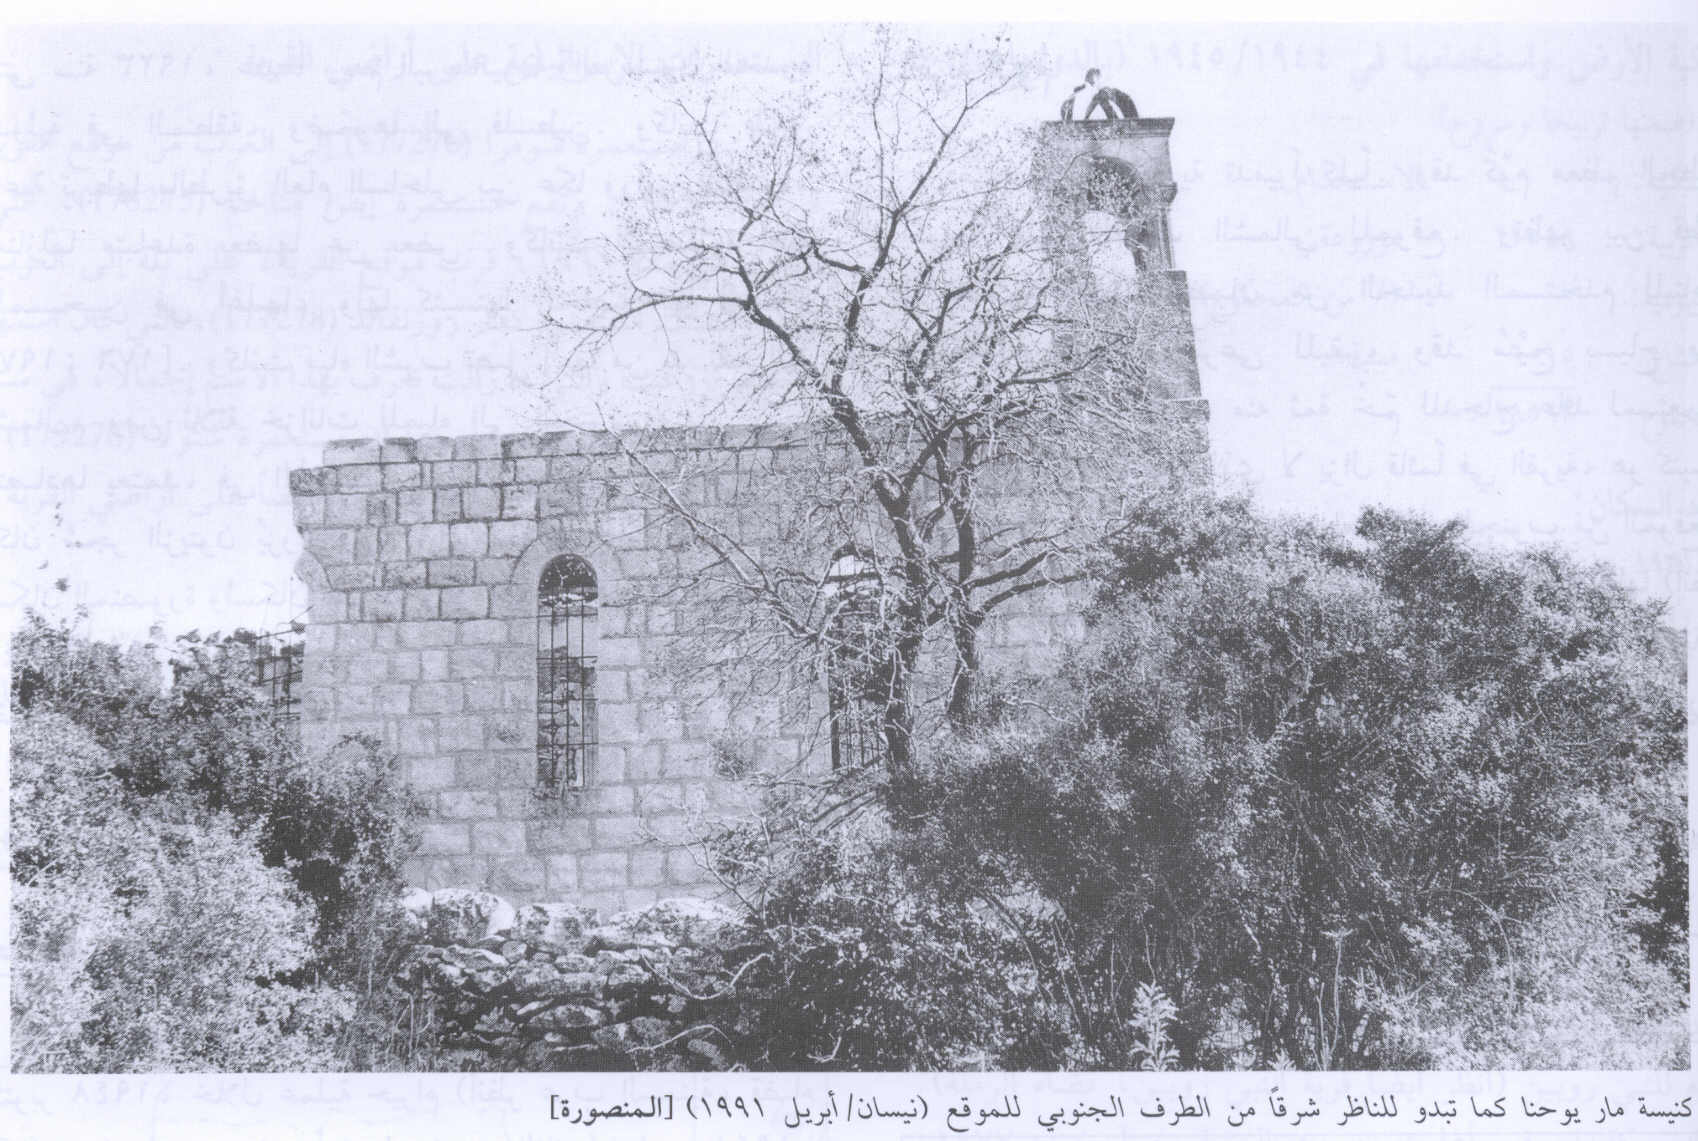 al-Mansura - المنصوره : al-Mansura's Church Of Yohanna In 1991